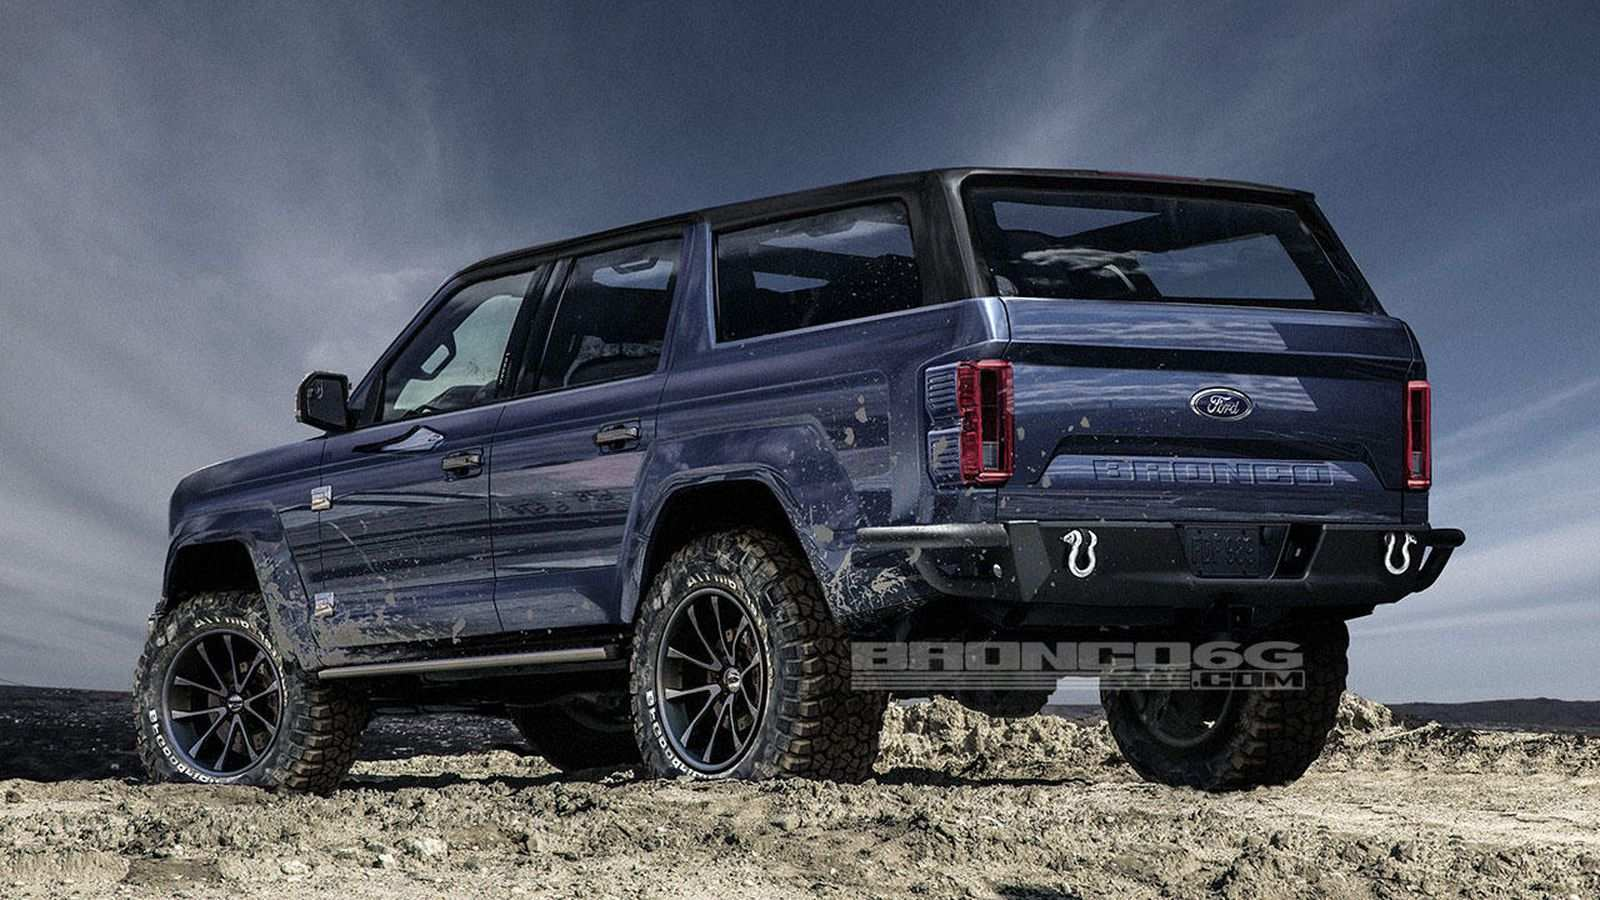 52 All New 2020 Ford Bronco Official Pictures Interior with 2020 Ford Bronco Official Pictures